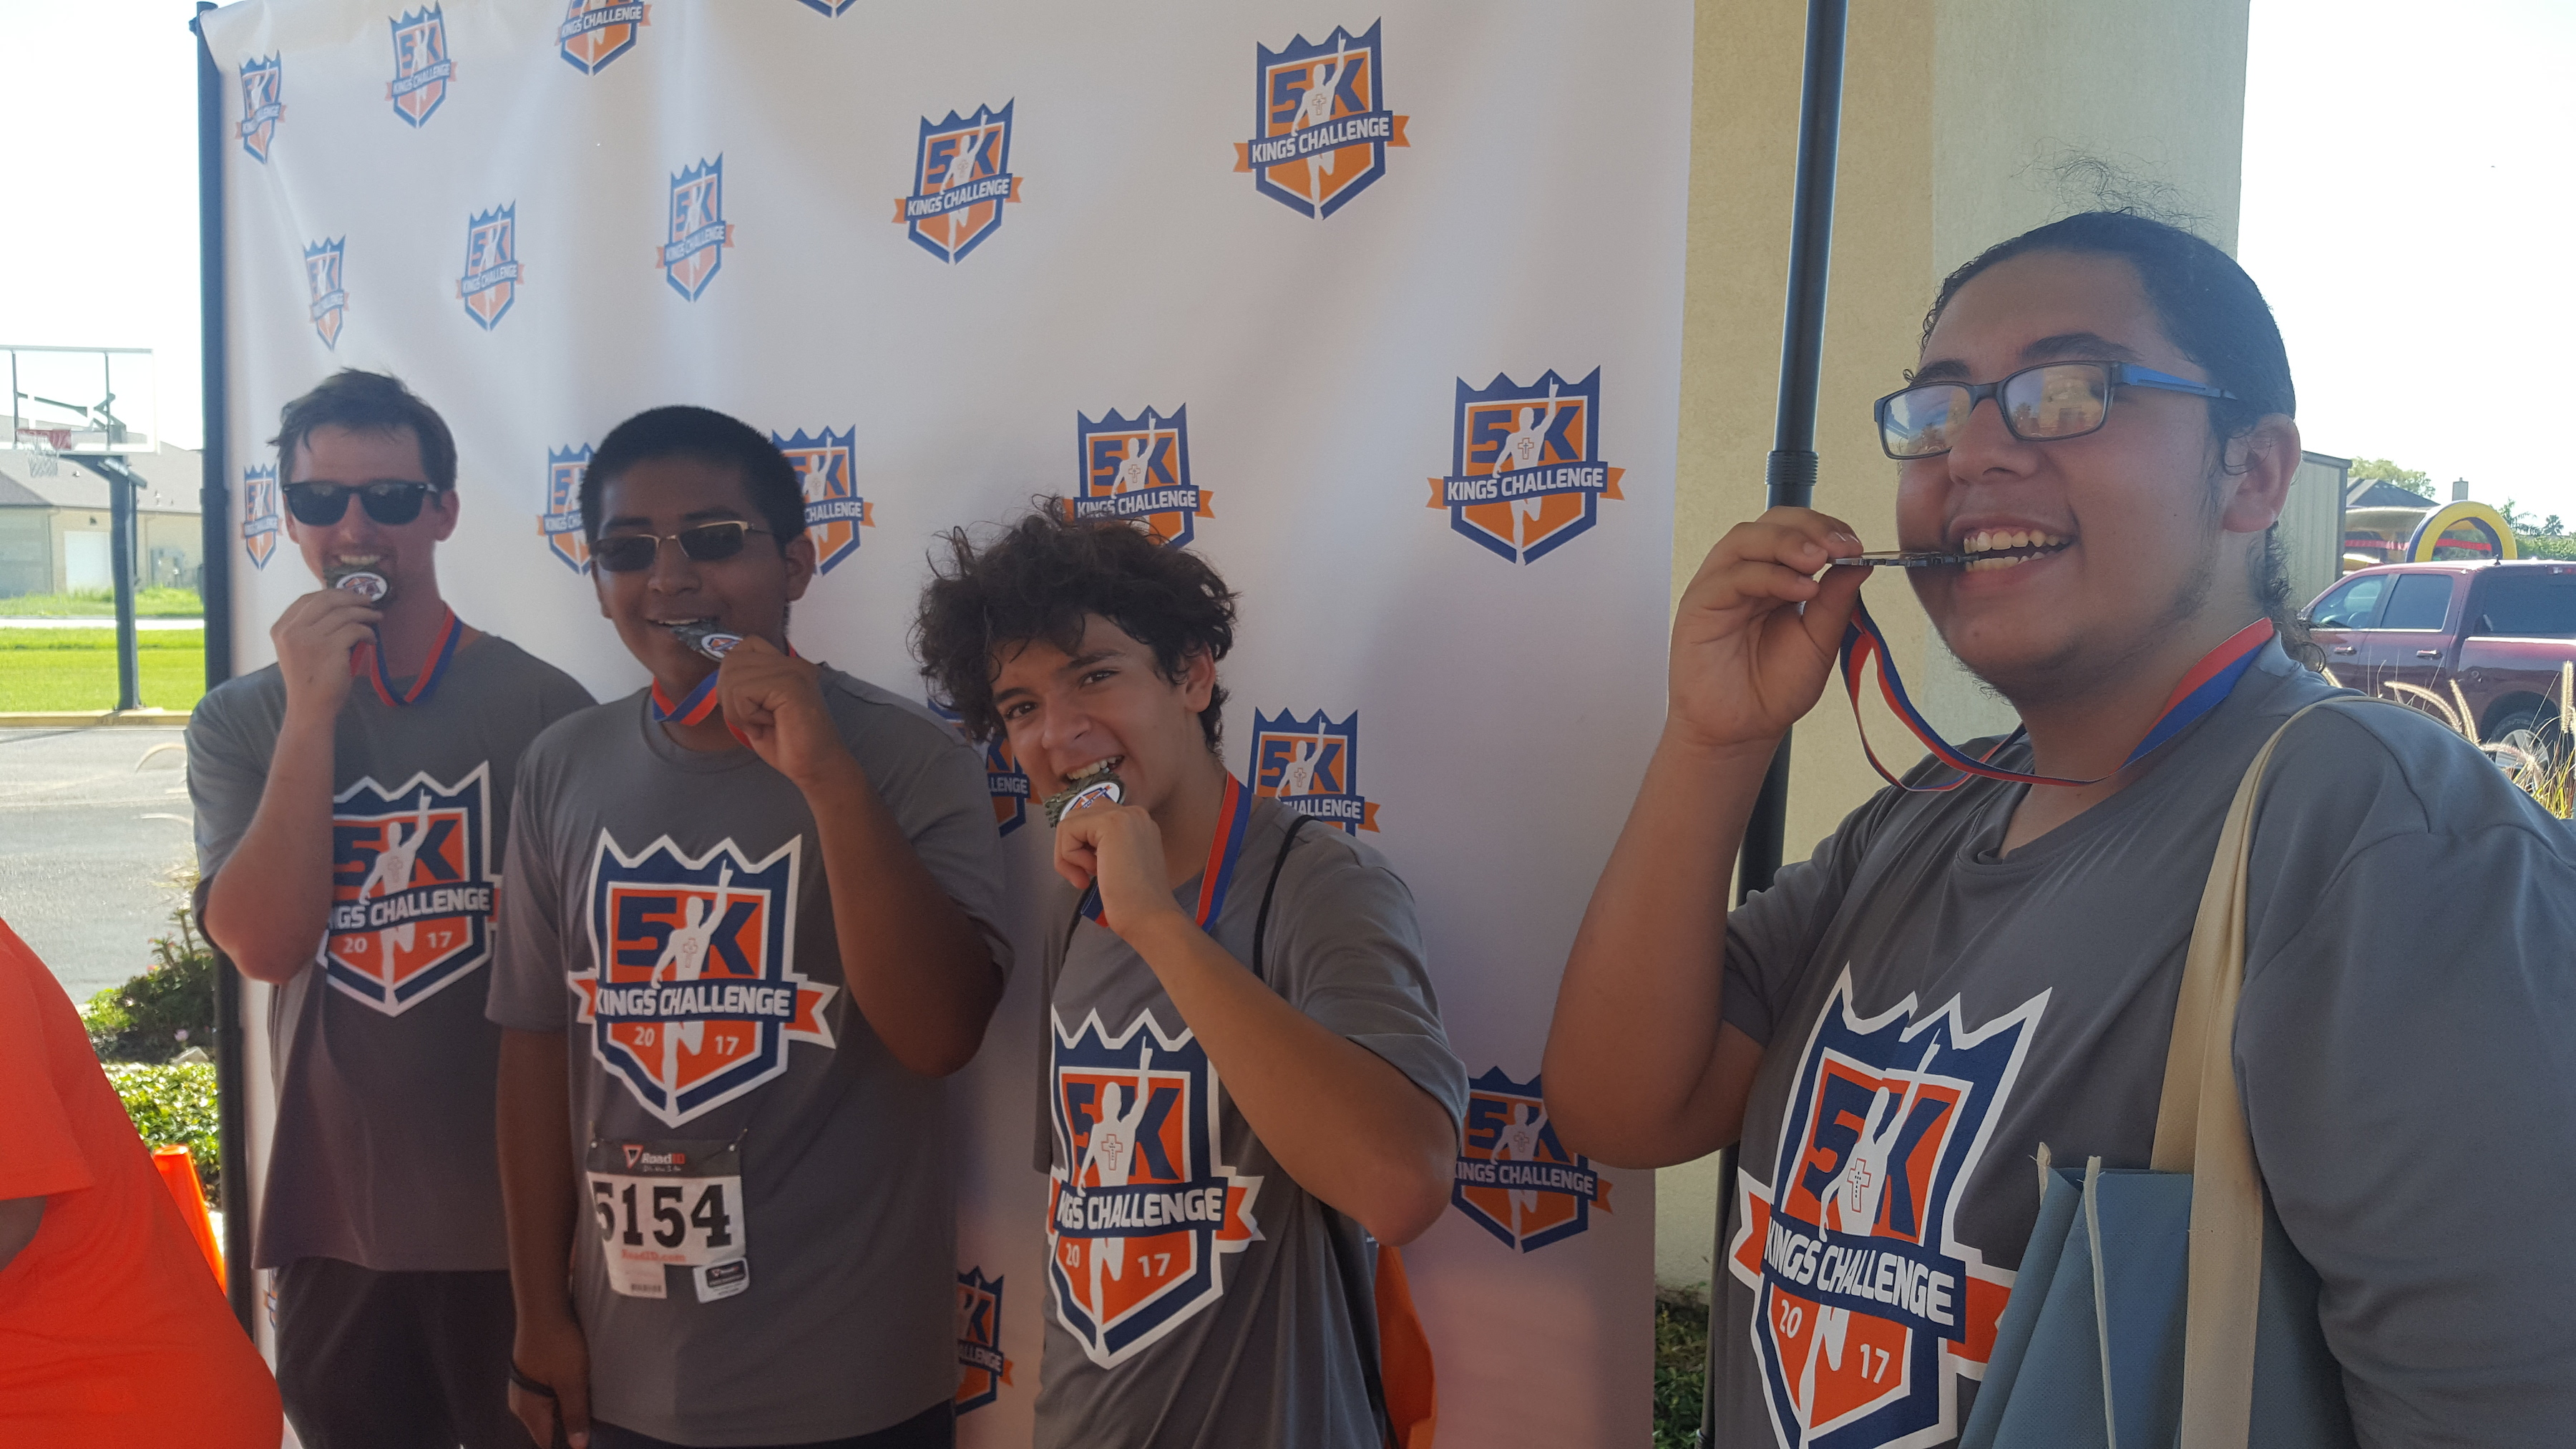 Youth Odyssey king's challenge 5k medal winners